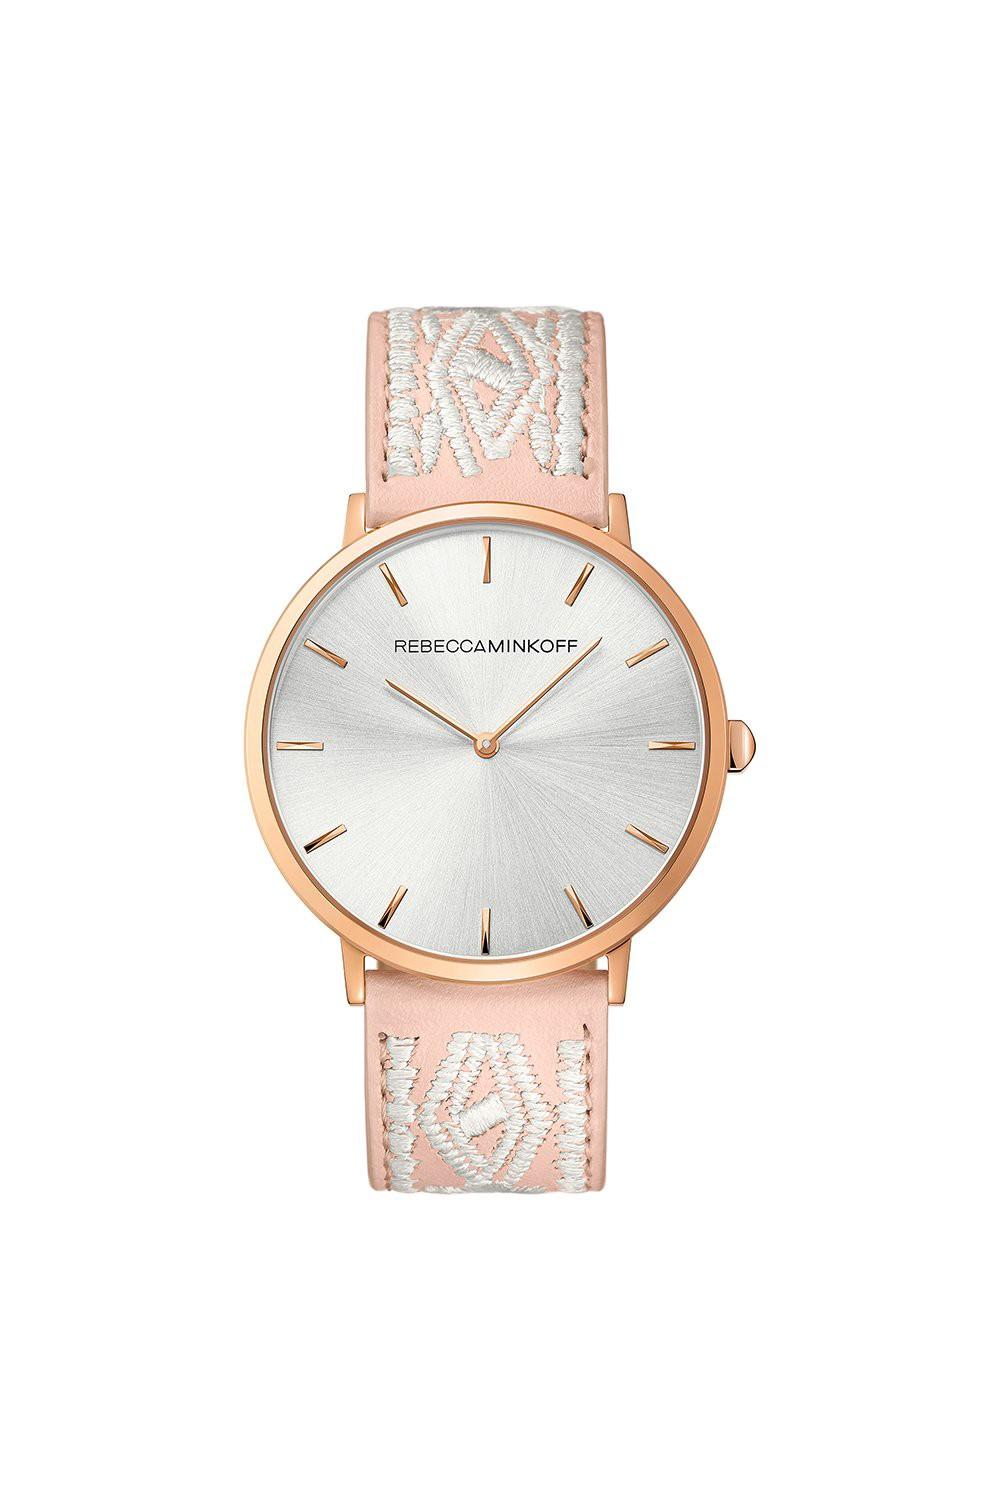 Rebecca Minkoff Major Rose Gold Tone Stitched Leather Watch, 40mm In Silver